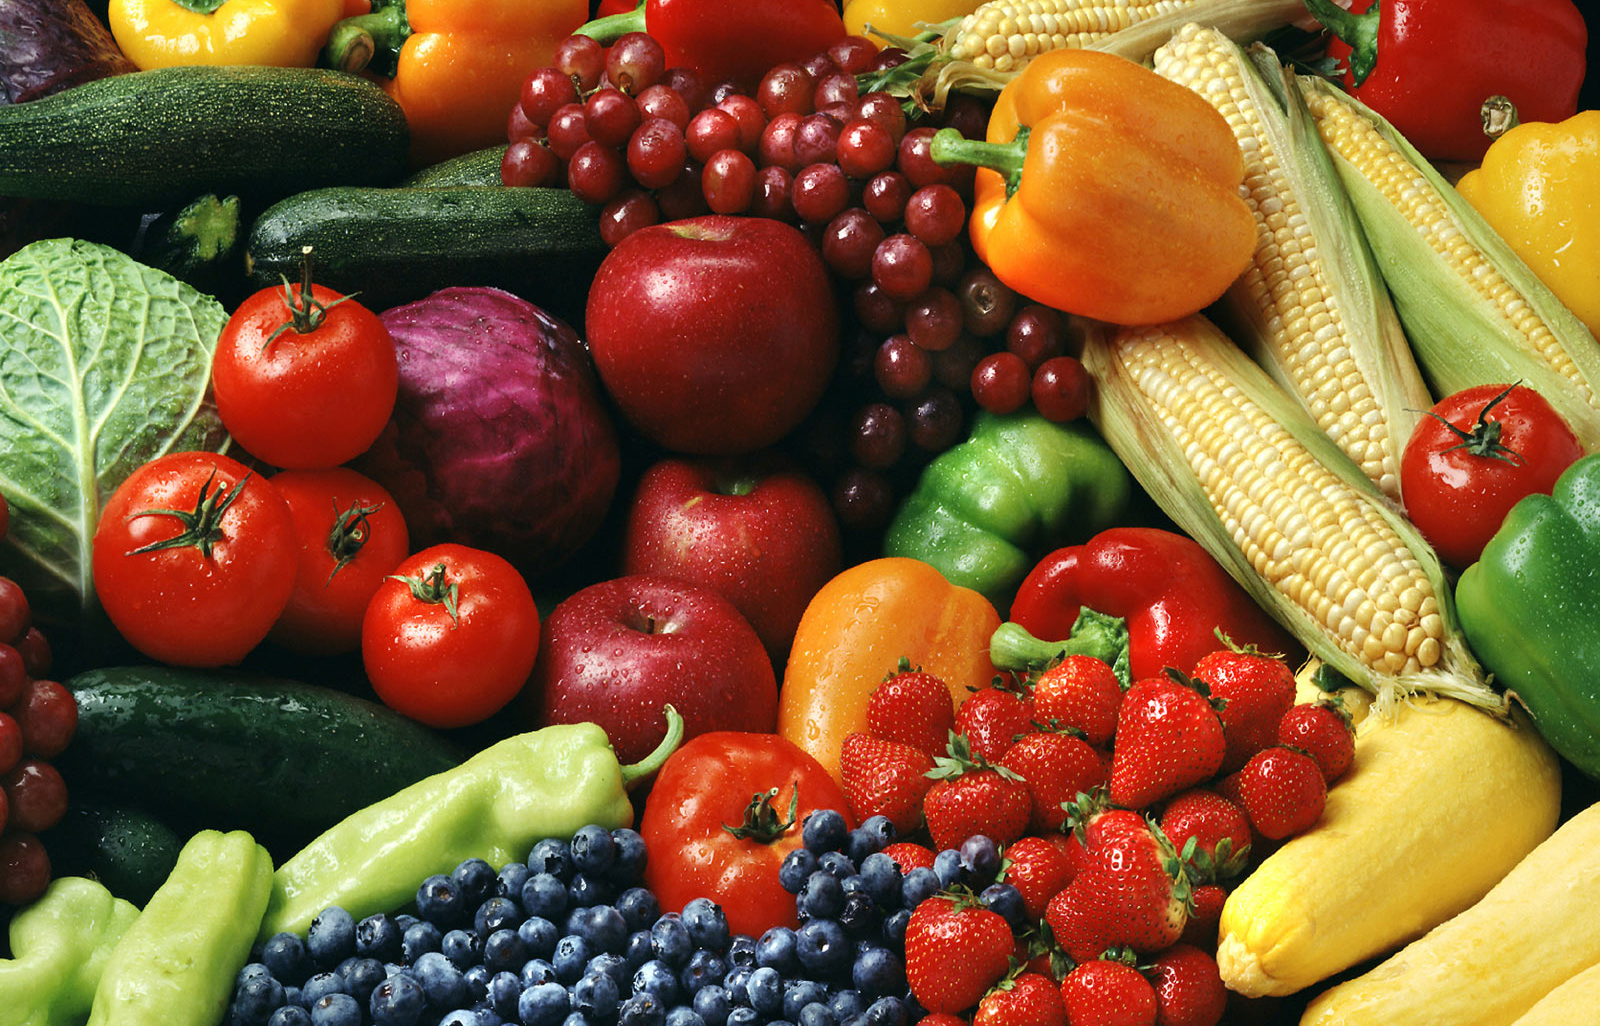 Organic foods are healthier than conventionally grown foods – Texila Connect